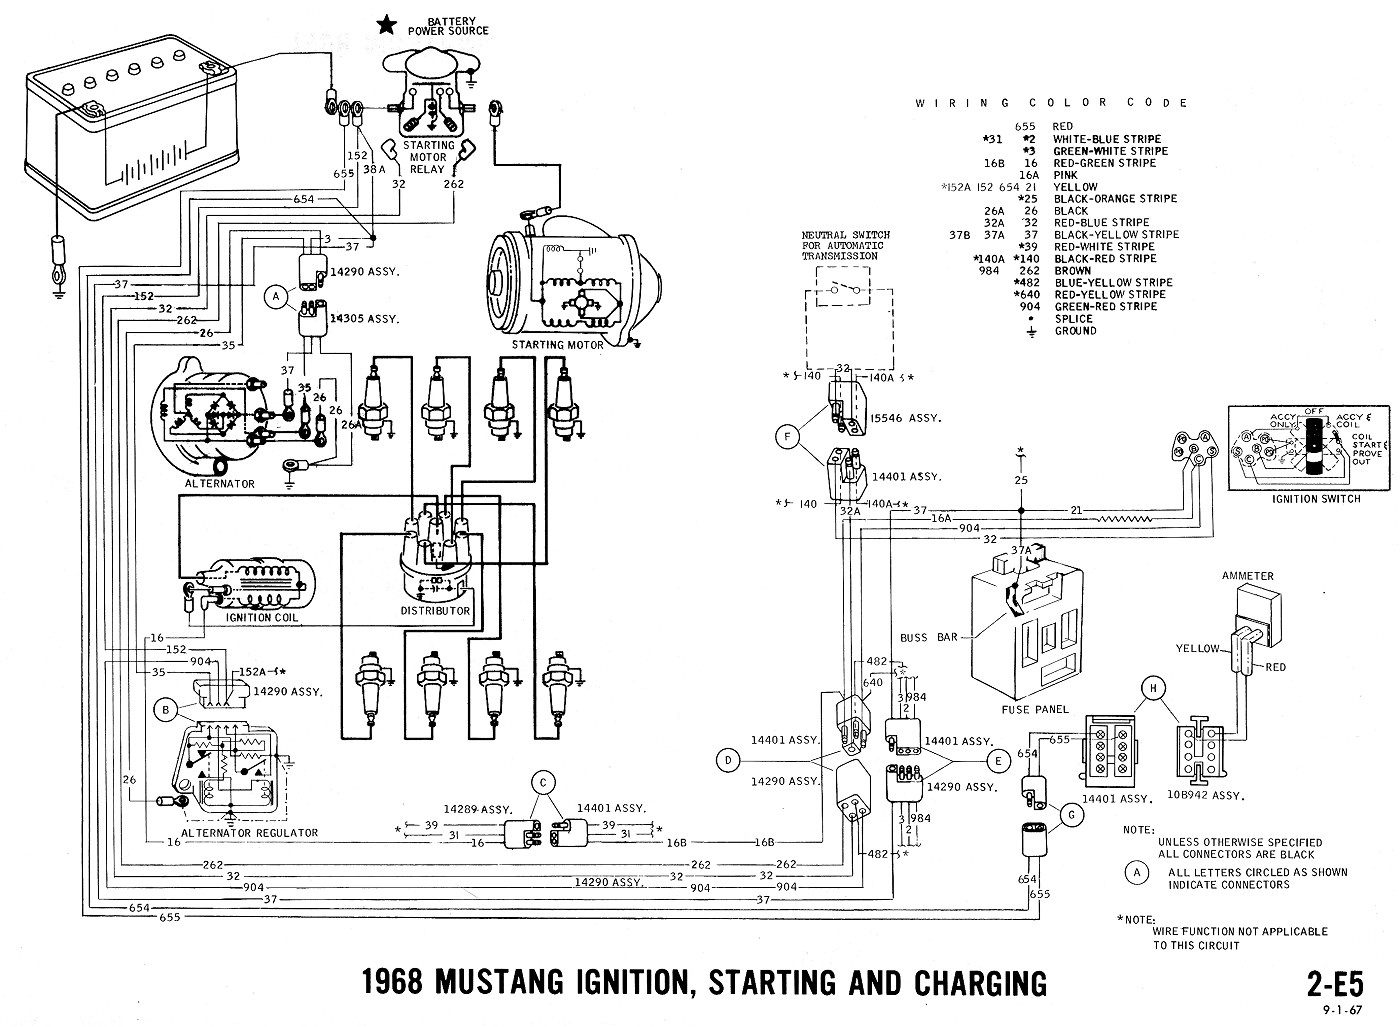 1968 mustang wiring diagrams evolving software rh peterfranza com mustang wiring diagram 1967 mustang wiring diagram 2011